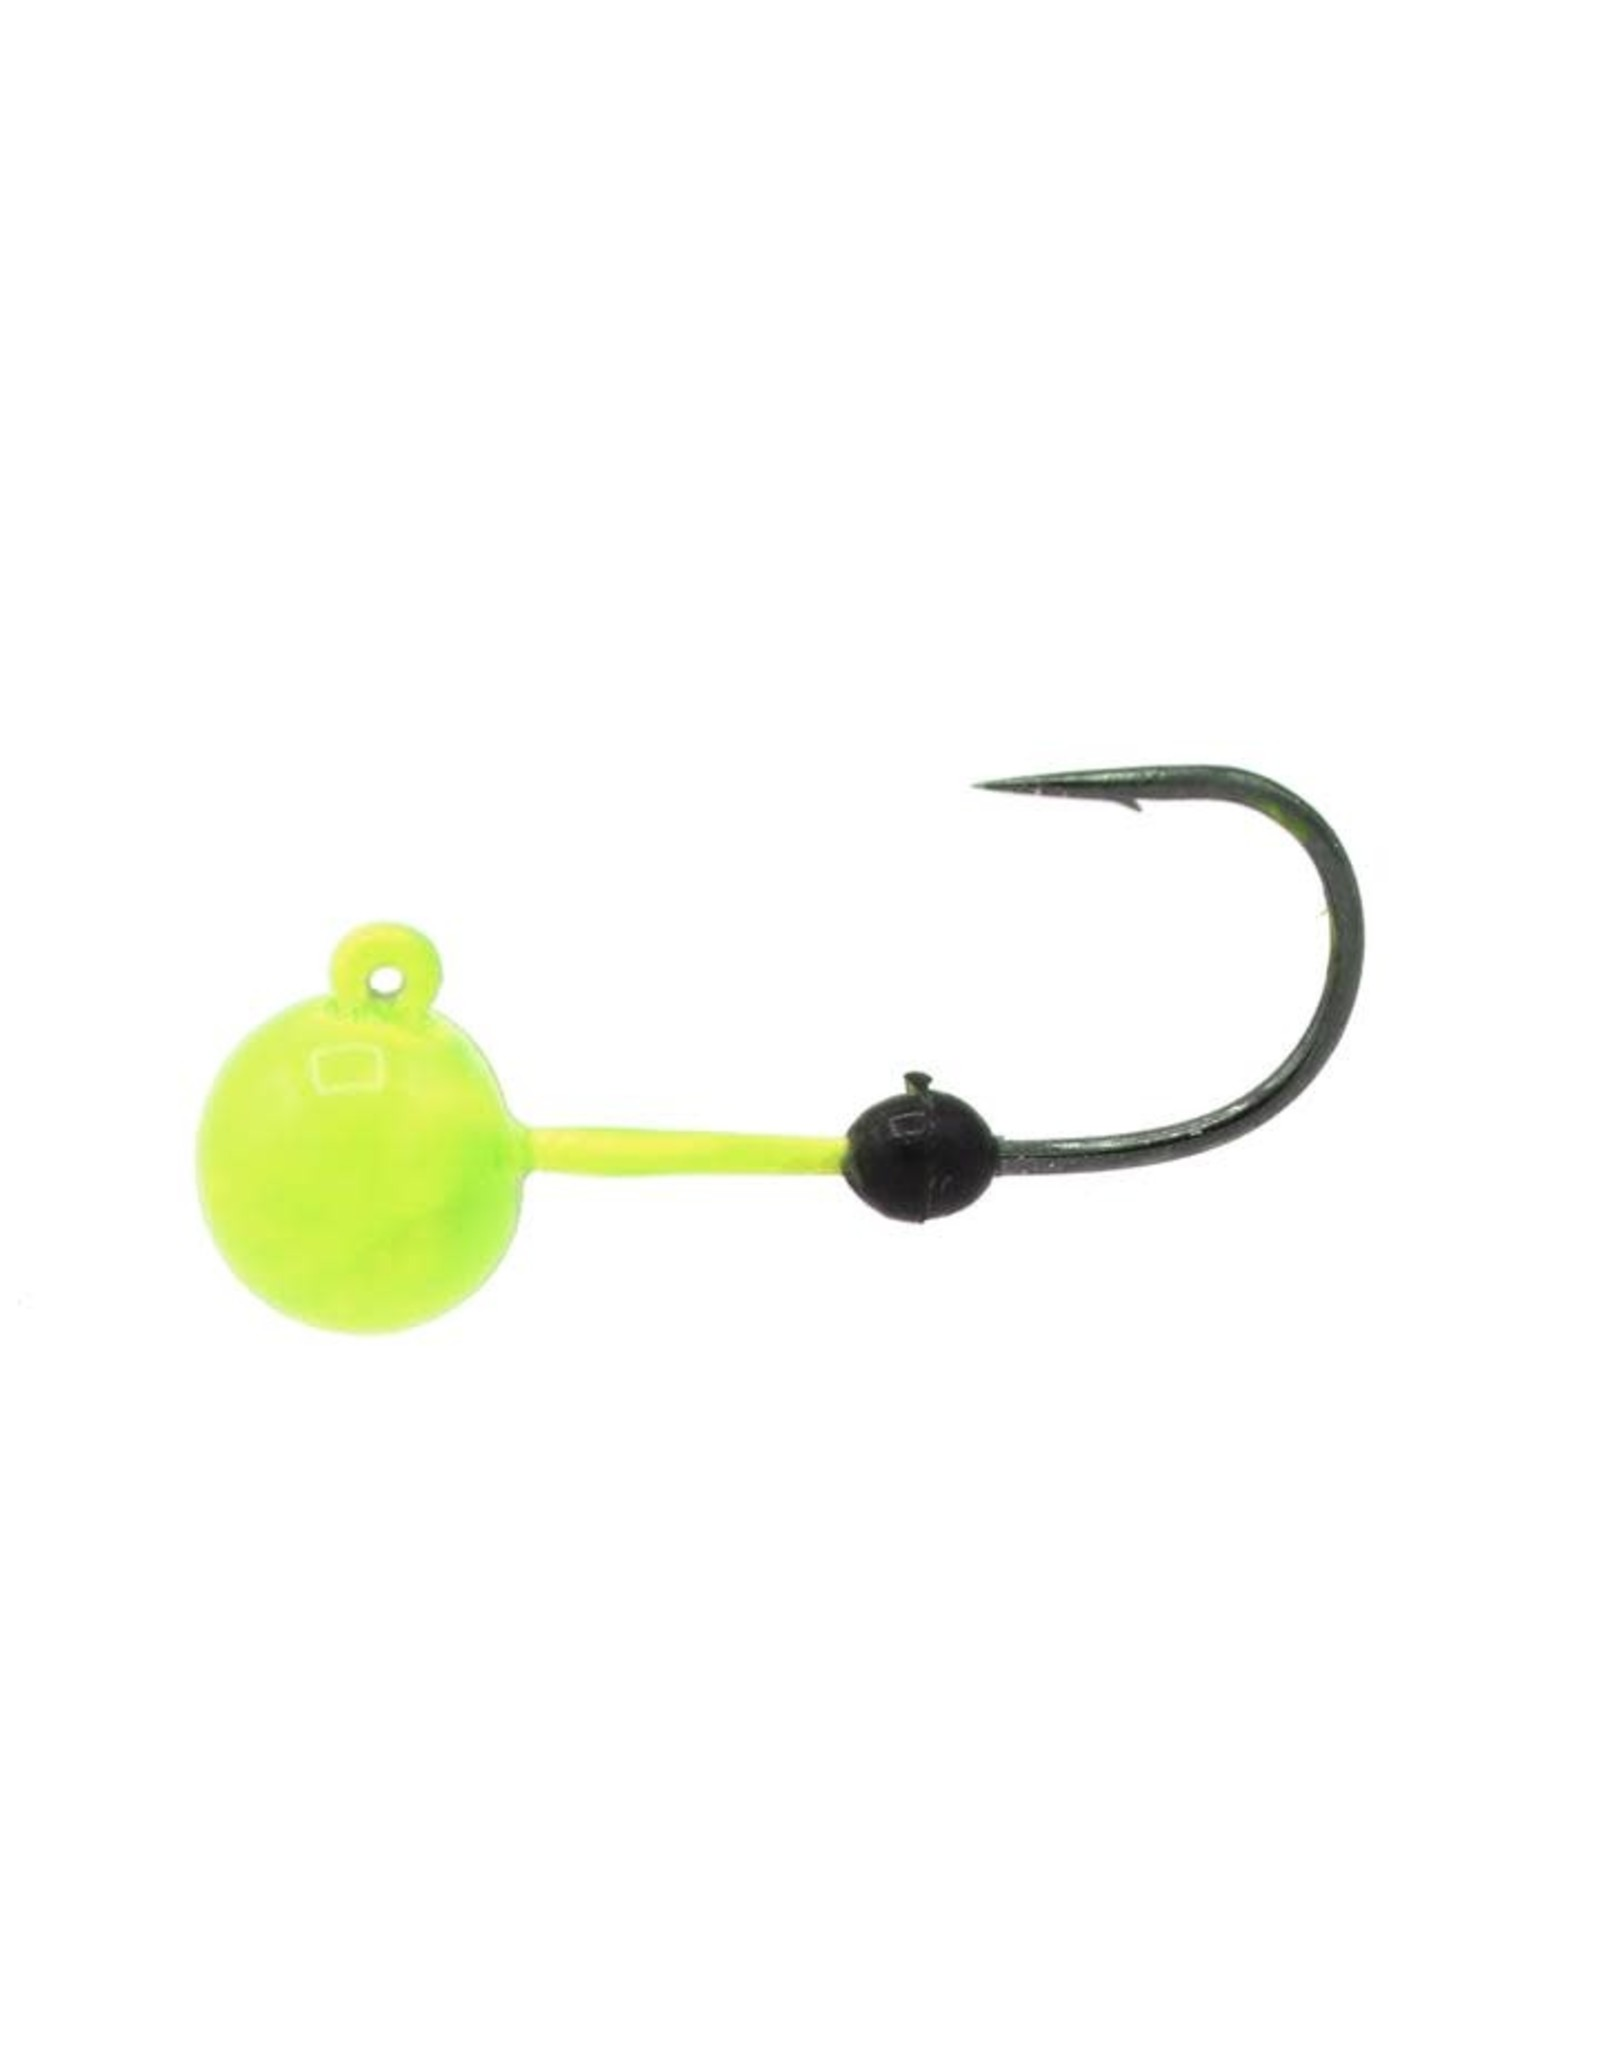 Eurotackle Eurotackle Micro Finesse Tungsten Soft-Lock Jig Heads